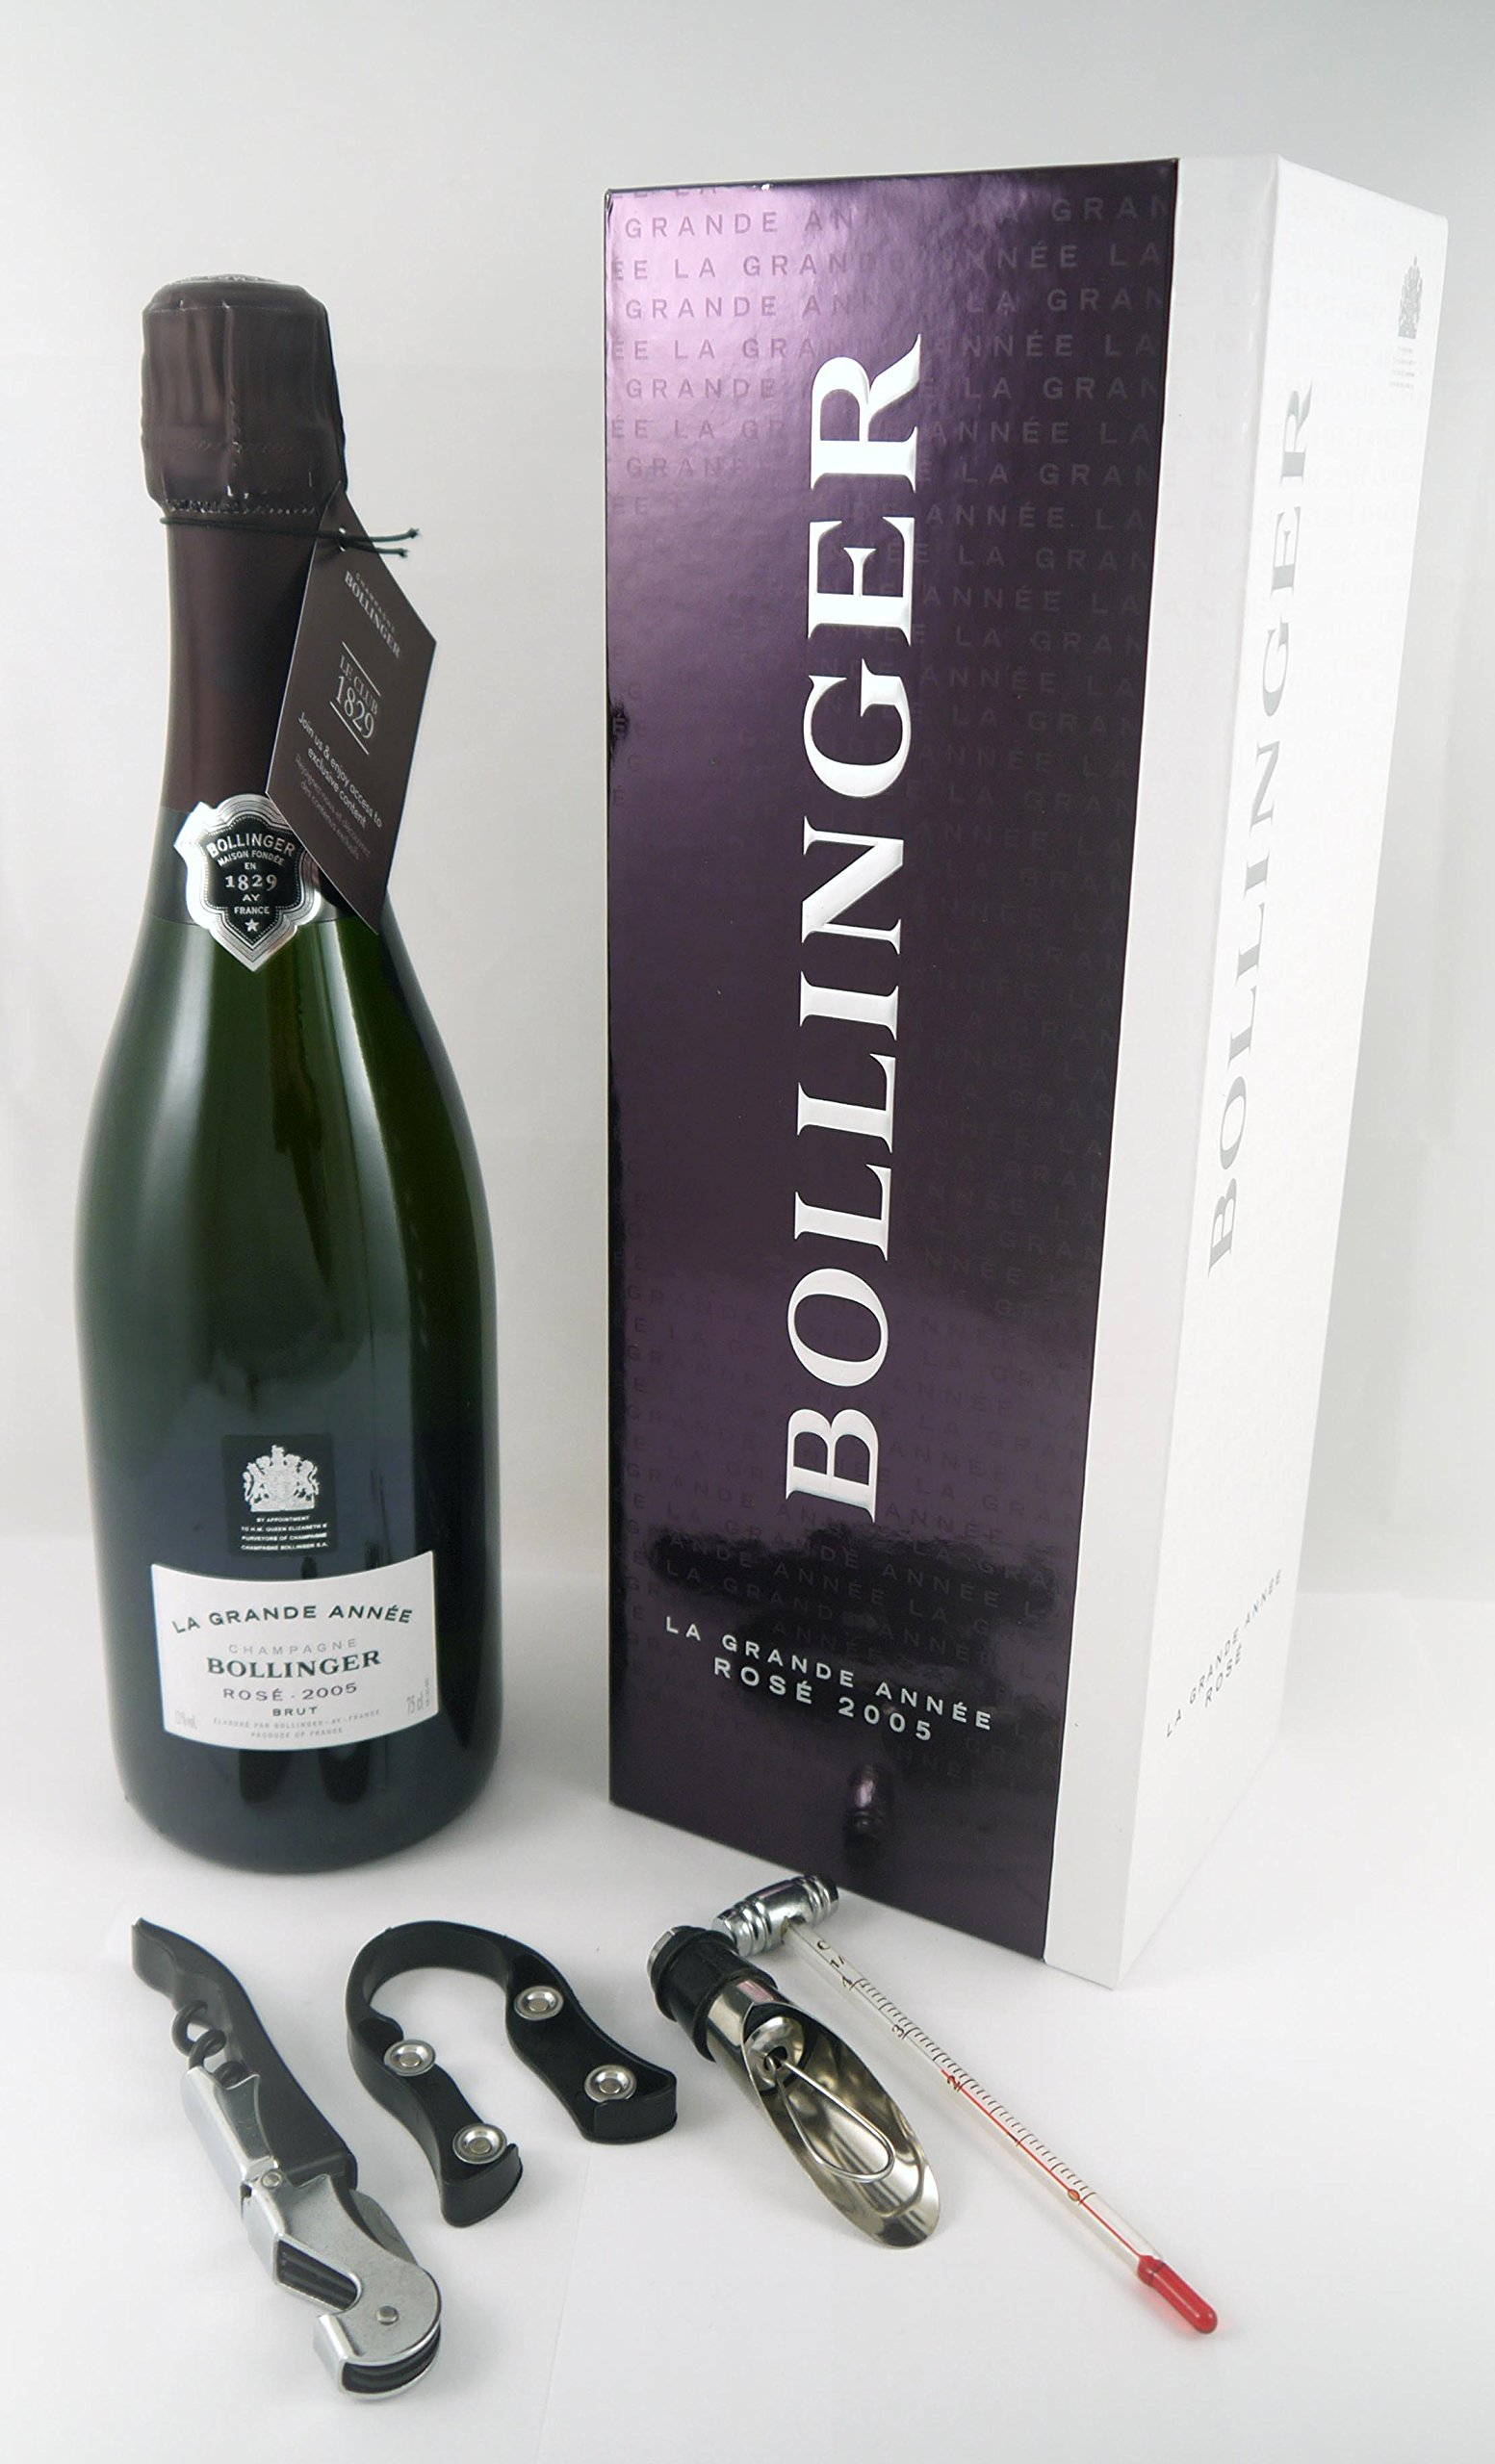 2005 Bollinger Rosé Grand Annee Vintage Champagne in its original gift box with four wine accessories.